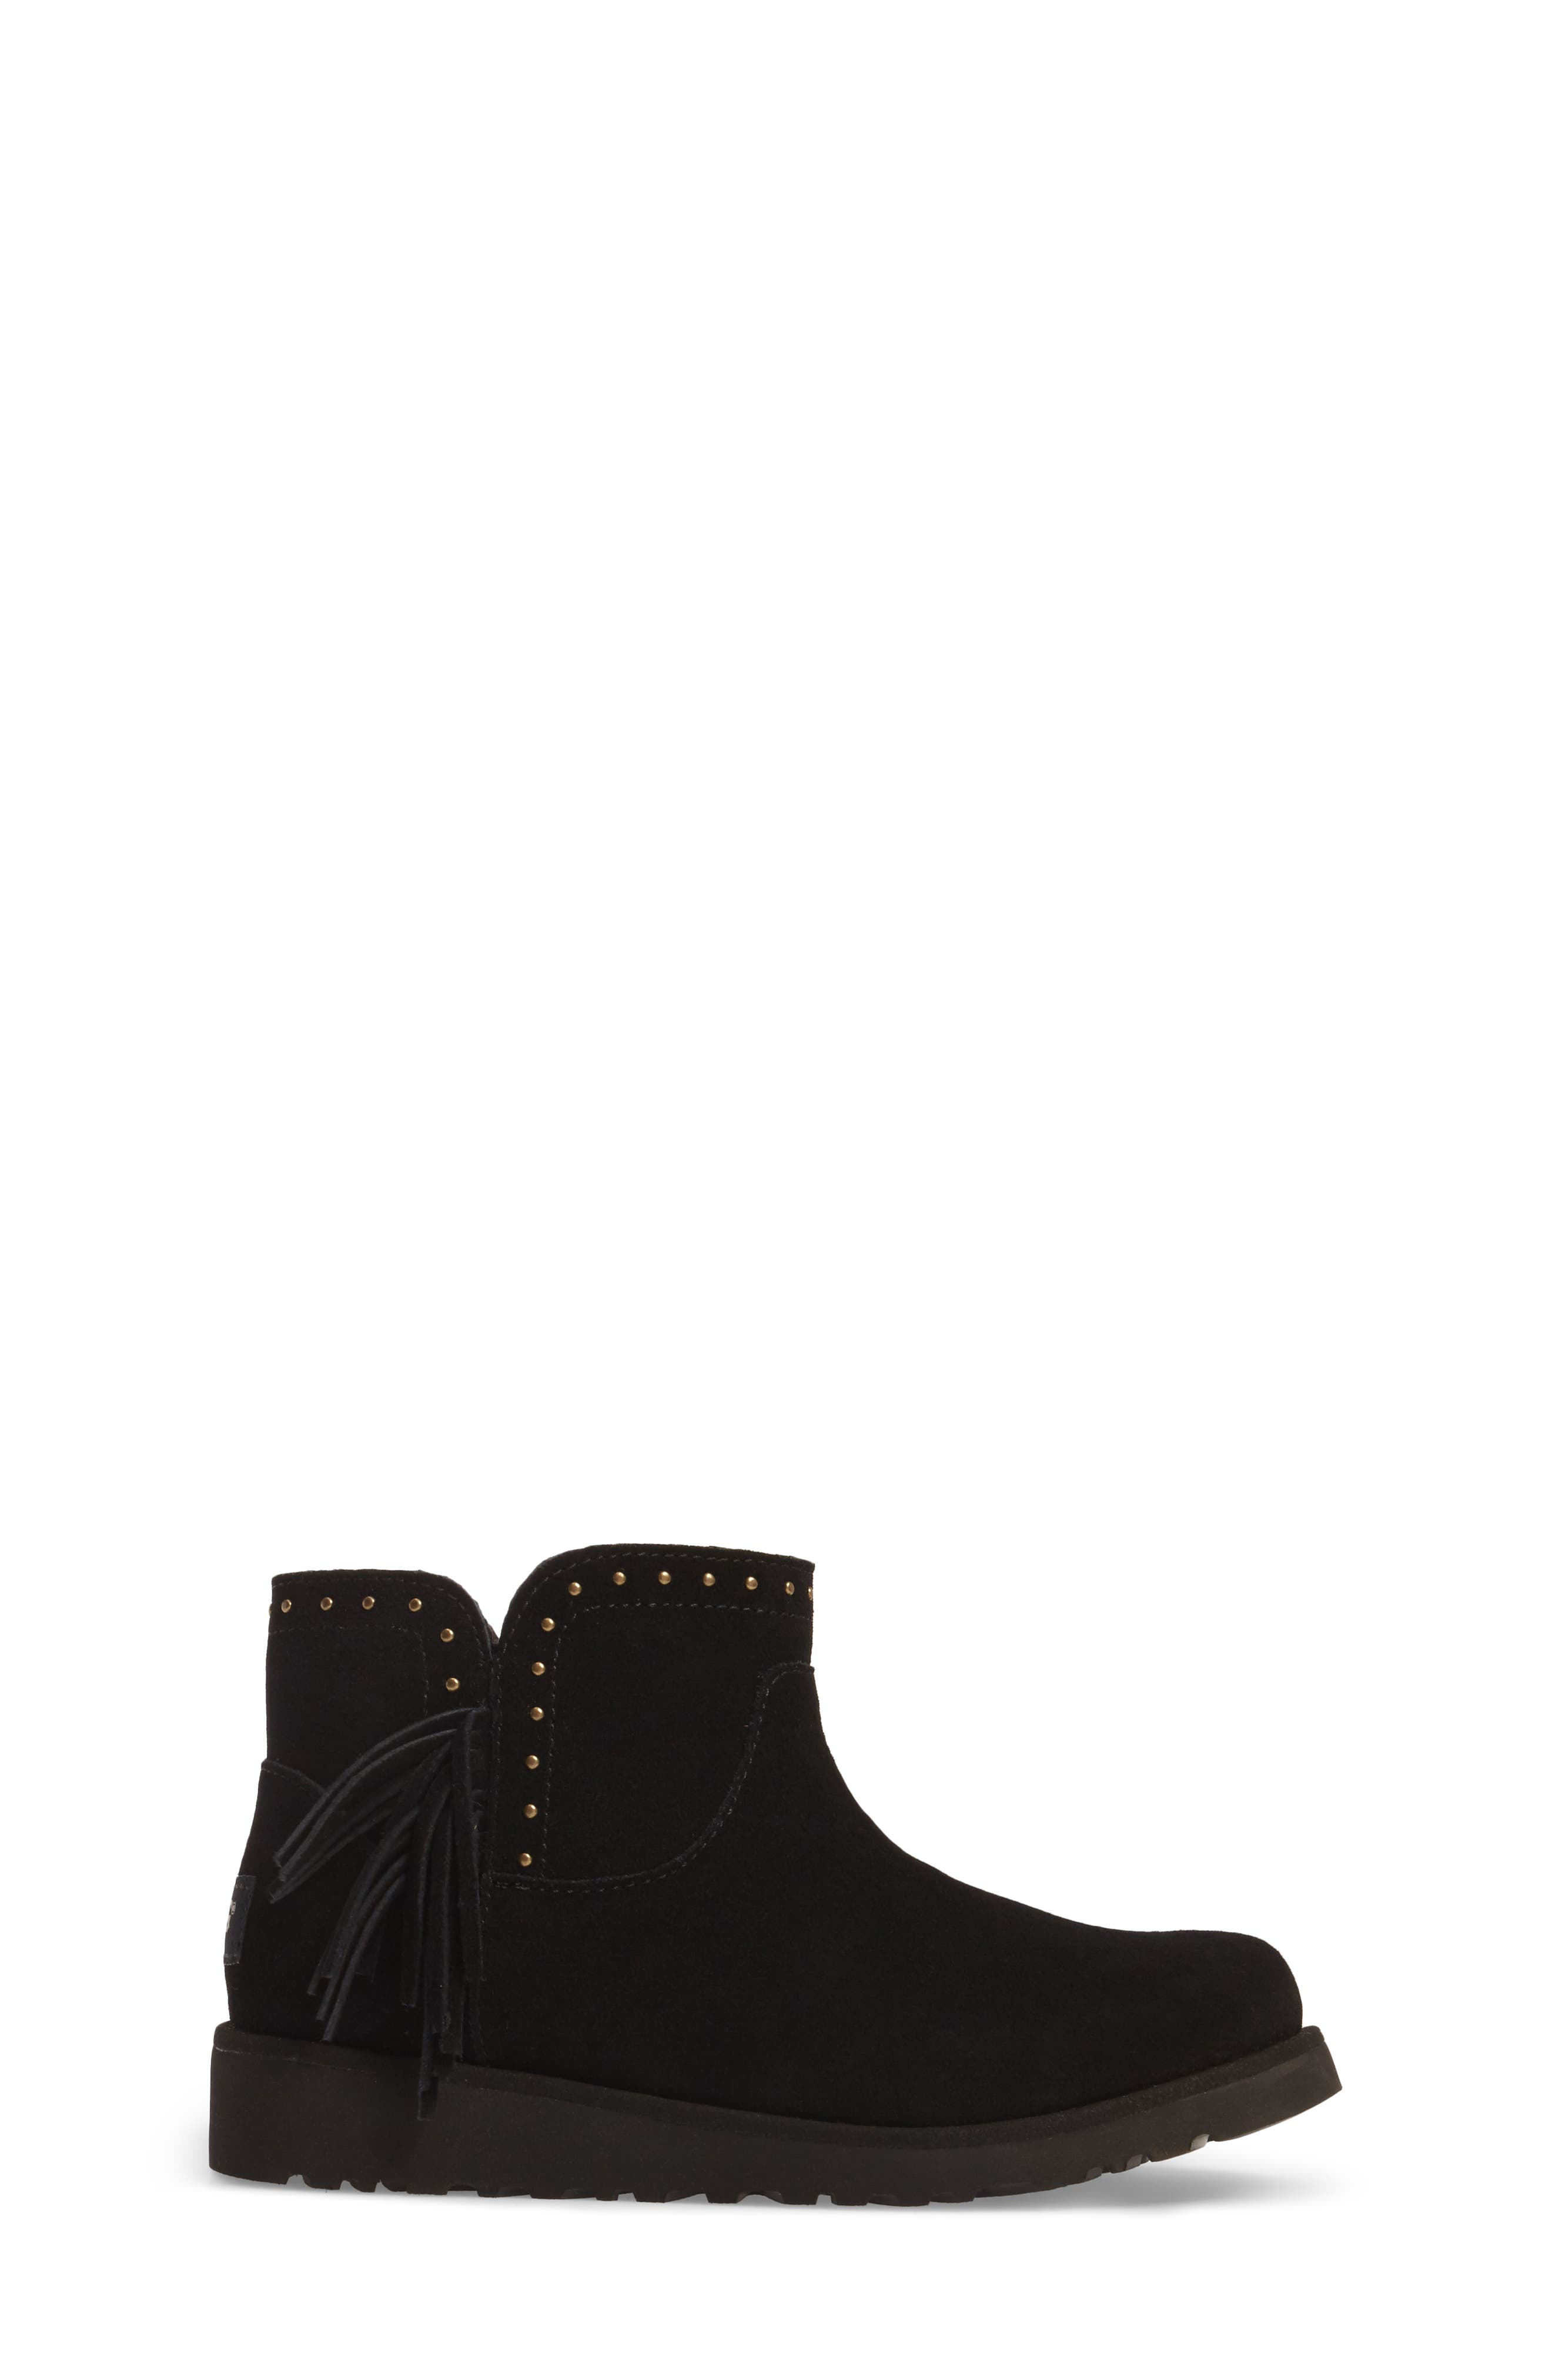 Cindy Water-Resistant Genuine Shearling Studded Bootie,                             Alternate thumbnail 3, color,                             001